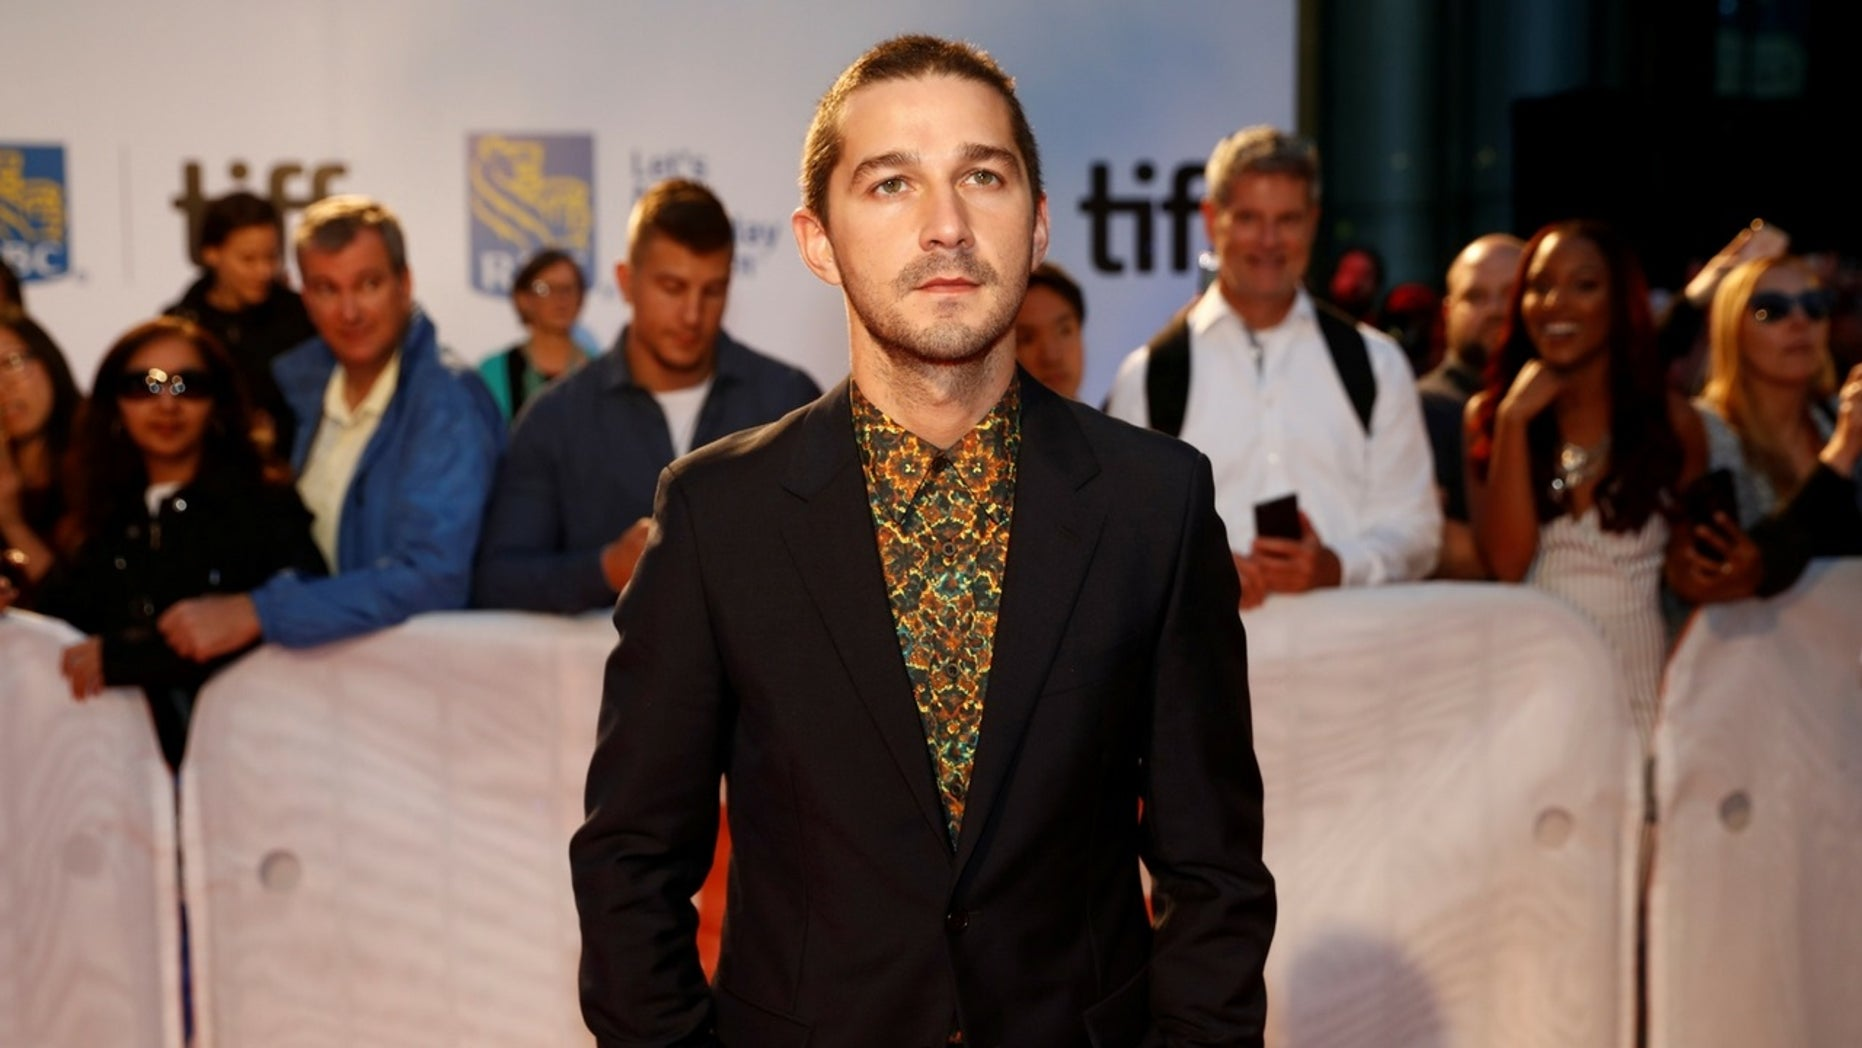 Actor Shia LaBeouf has reportedly filed for divorce from wife Mia Goth and has since been spotted with pop star FKA twigs.